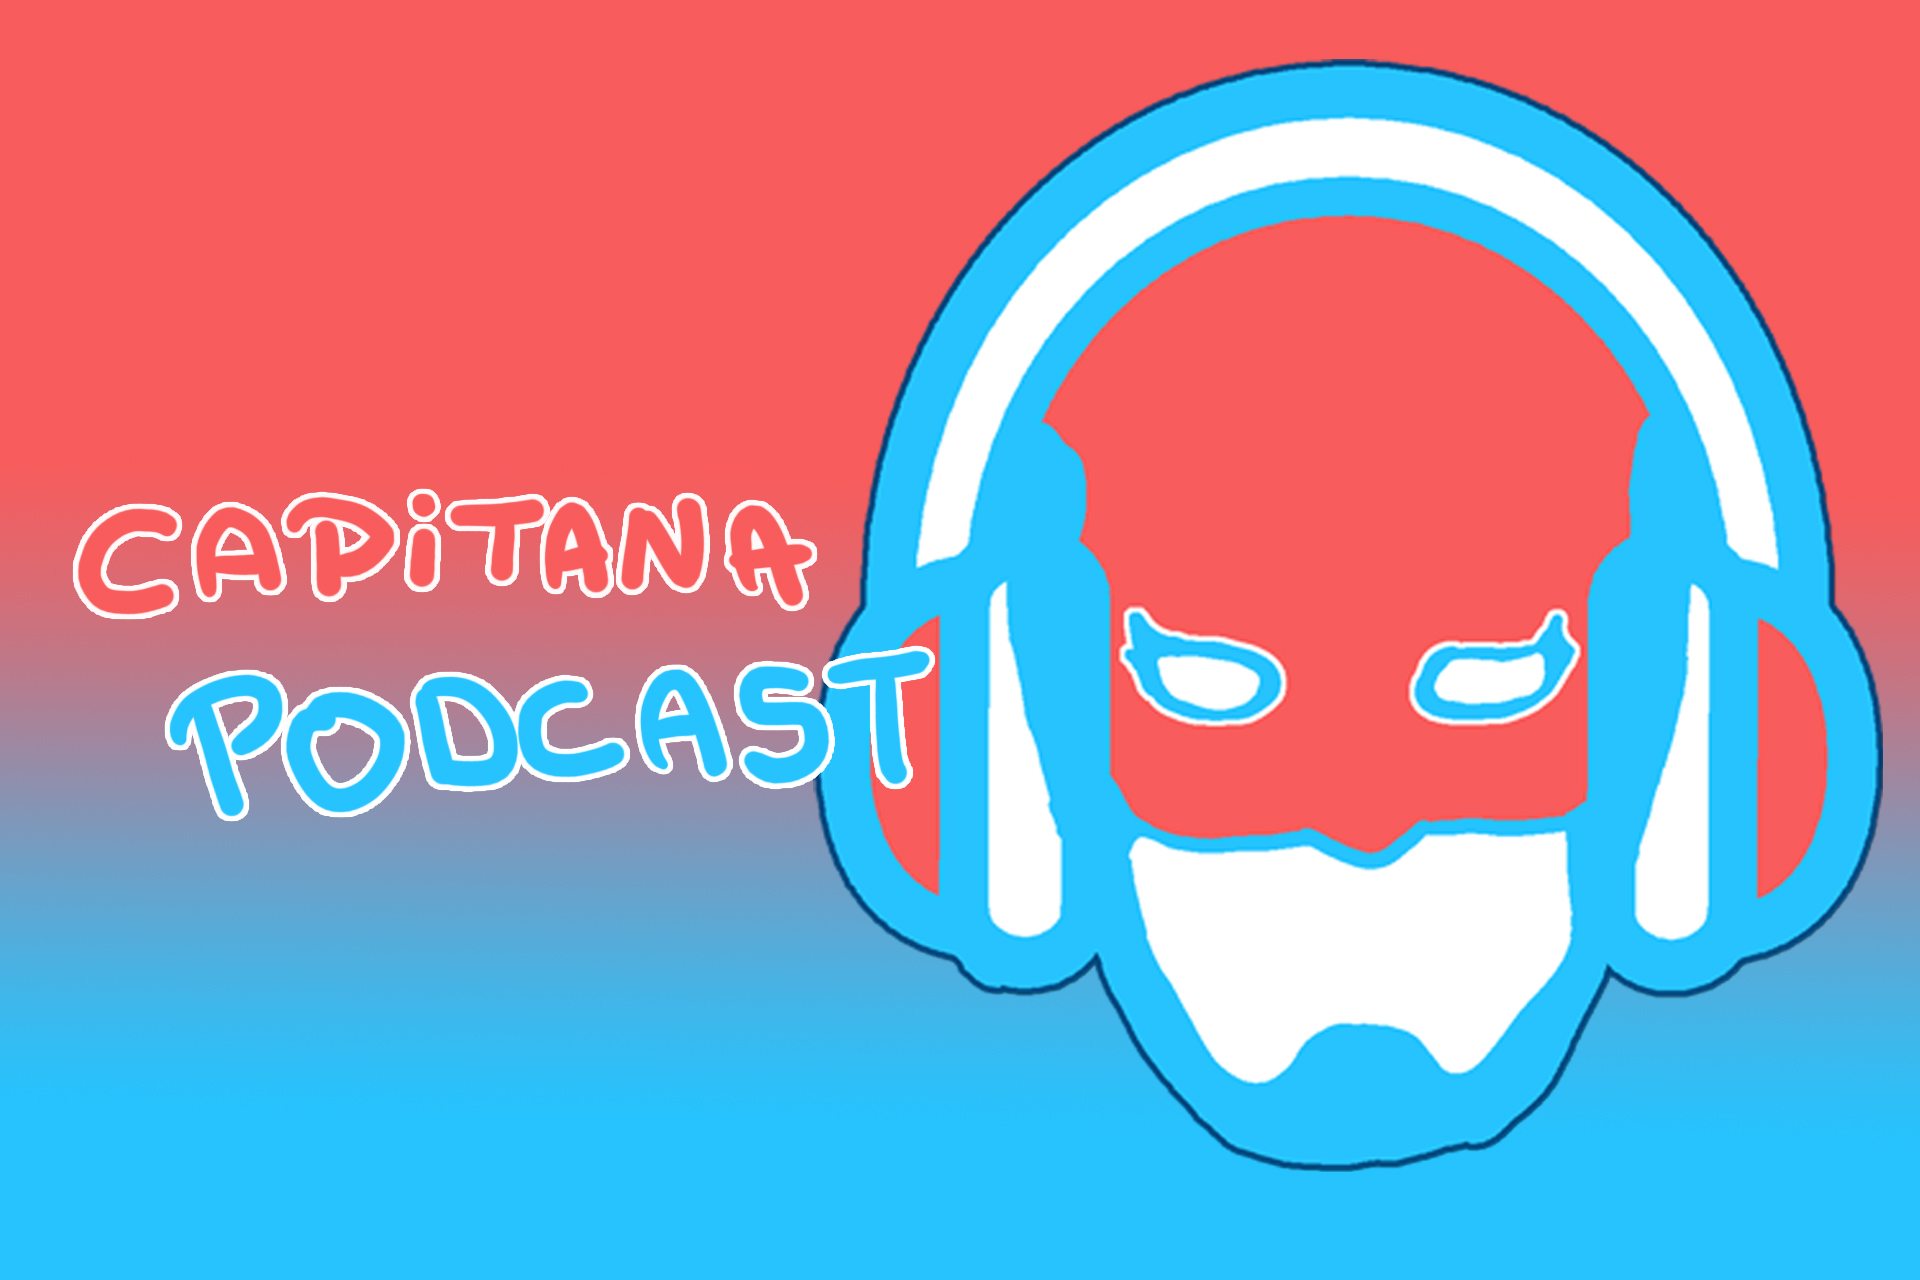 Capitana Podcast. Productora y difusora de programas podcast